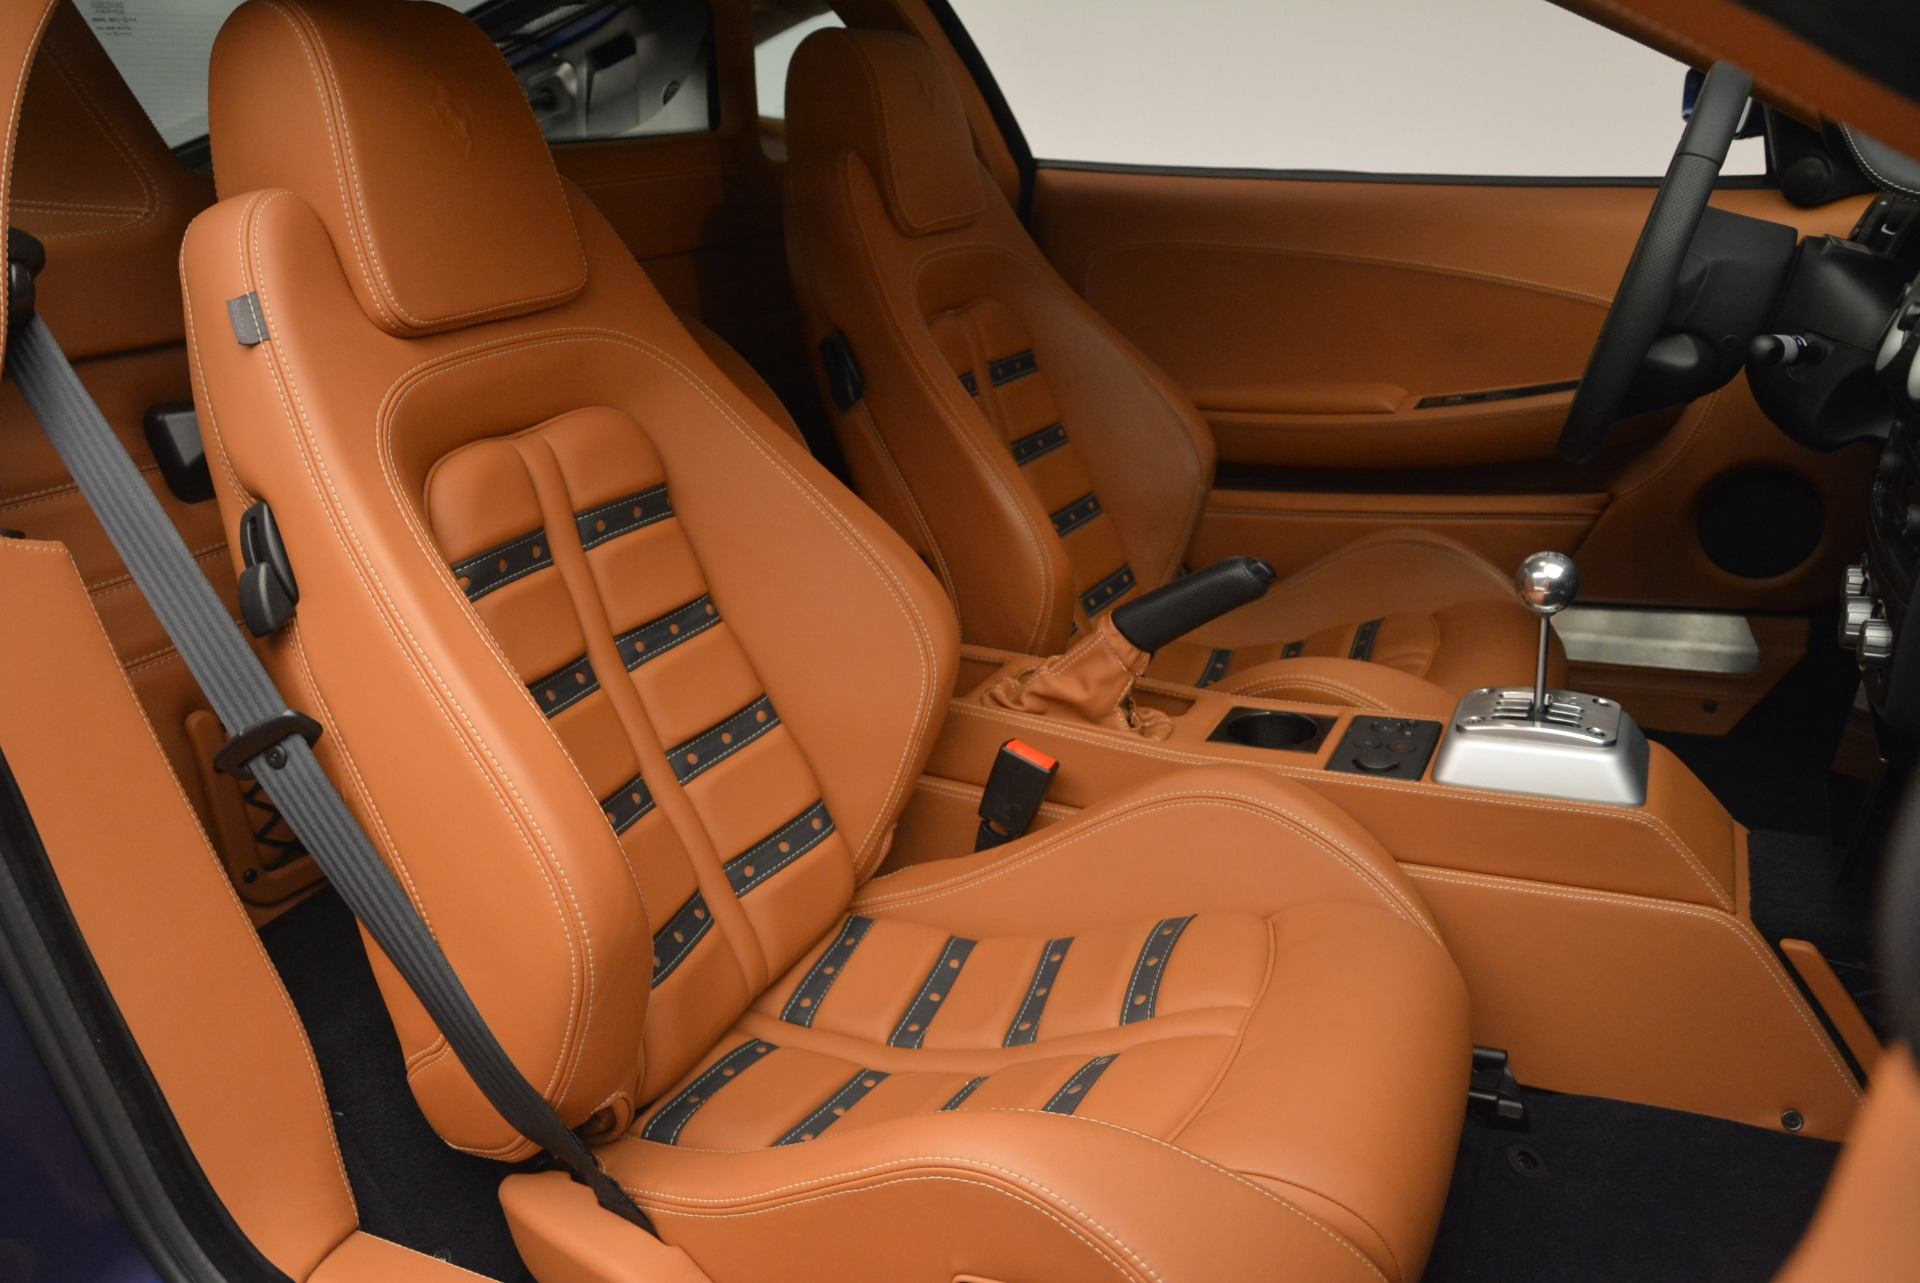 Used 2009 Ferrari F430 6-Speed Manual For Sale In Greenwich, CT 2466_p20